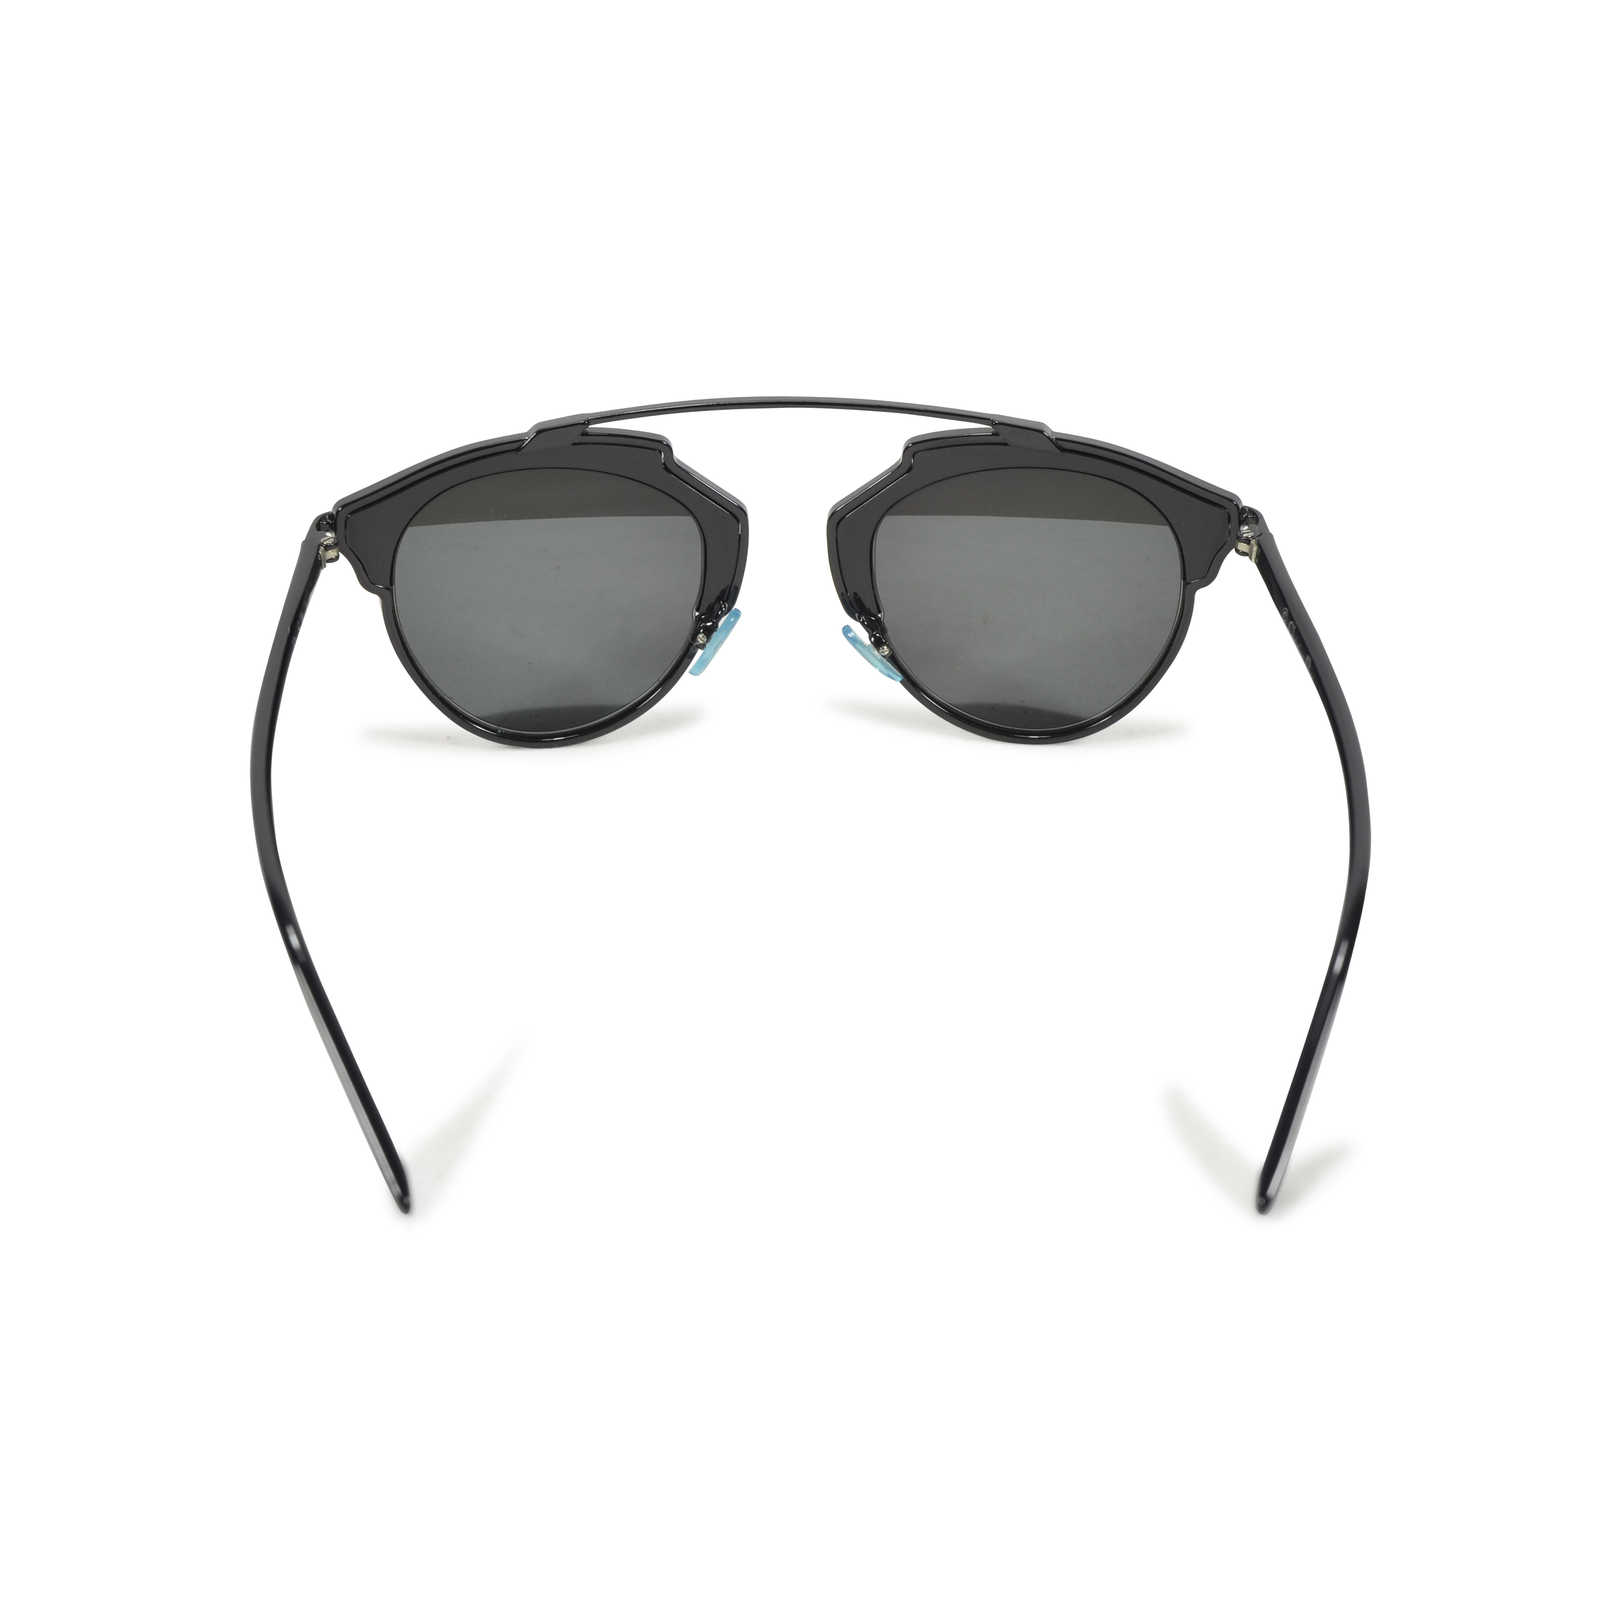 86e44a970911 ... Authentic Second Hand Dior So Real Sunglasses (PSS-340-00022) -  Thumbnail ...